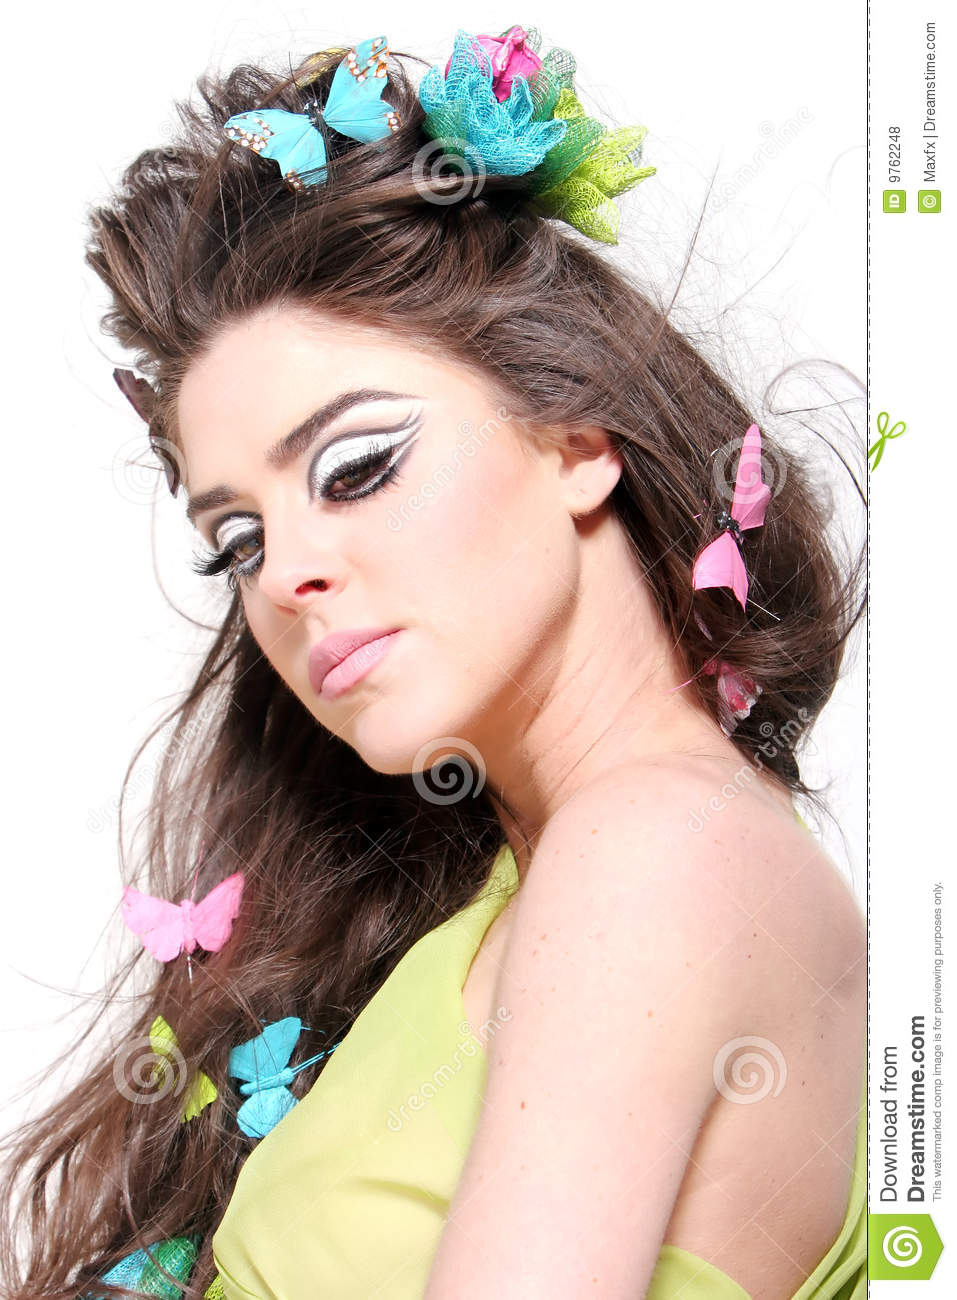 Hairstyle and makeup stock photo. Image of glamour, makeup - 9762248